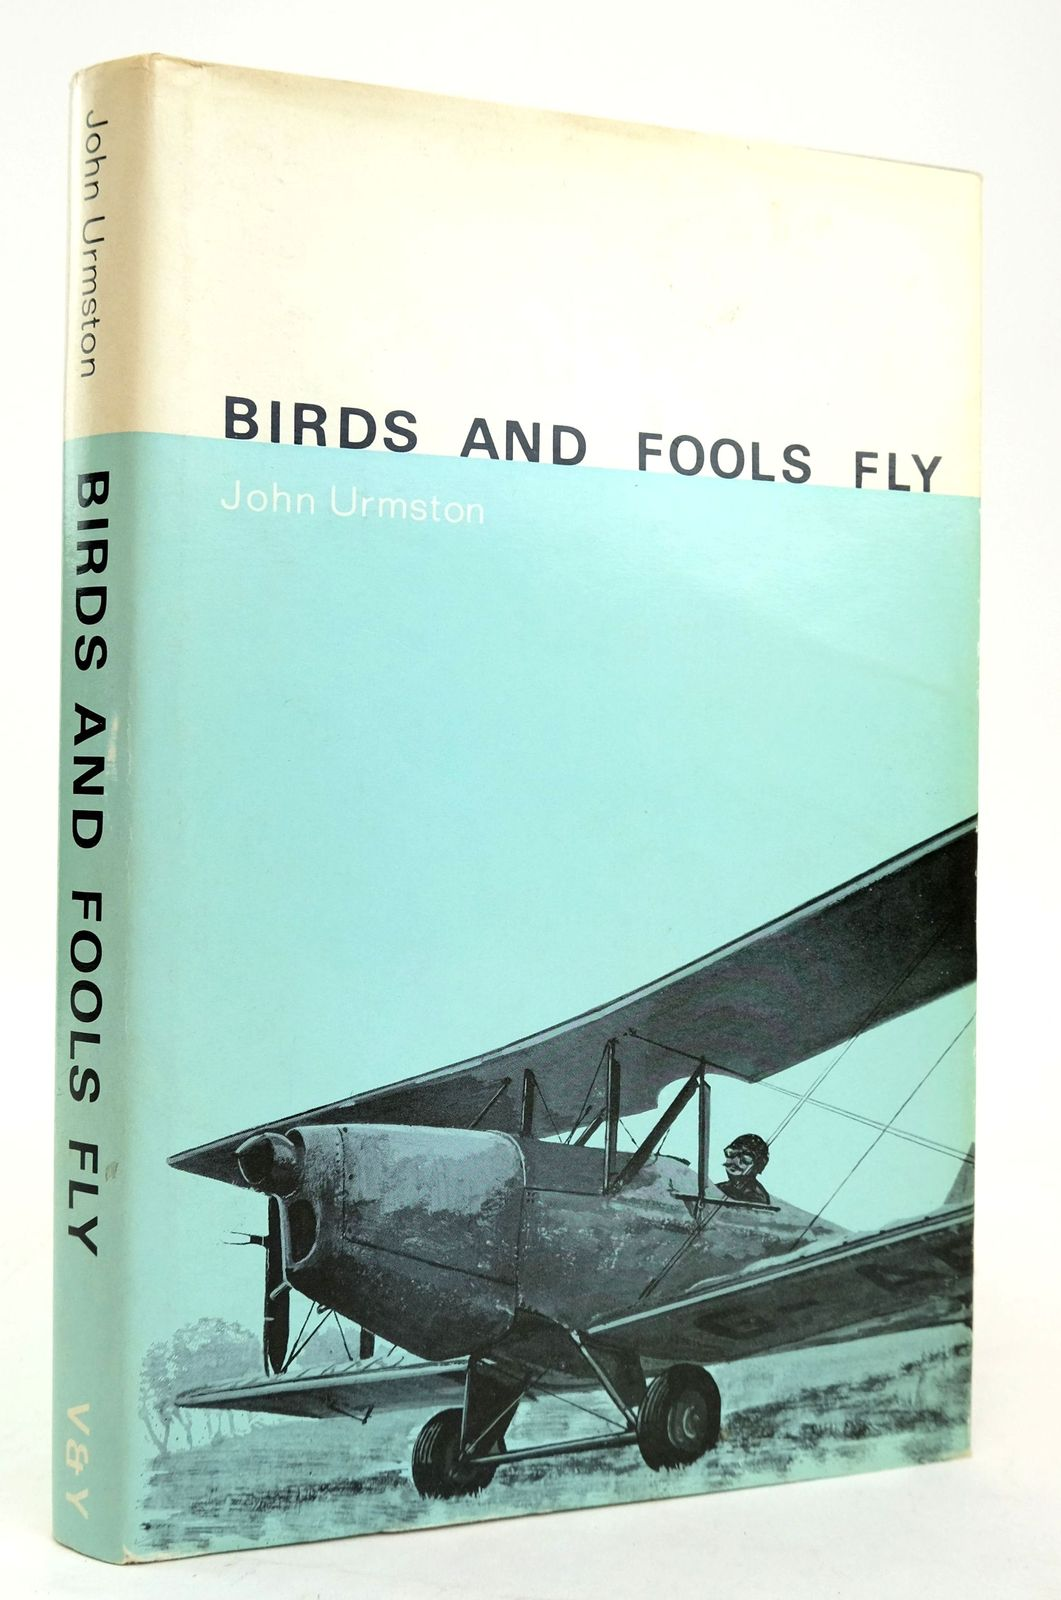 Photo of BIRDS AND FOOLS FLY- Stock Number: 1820199